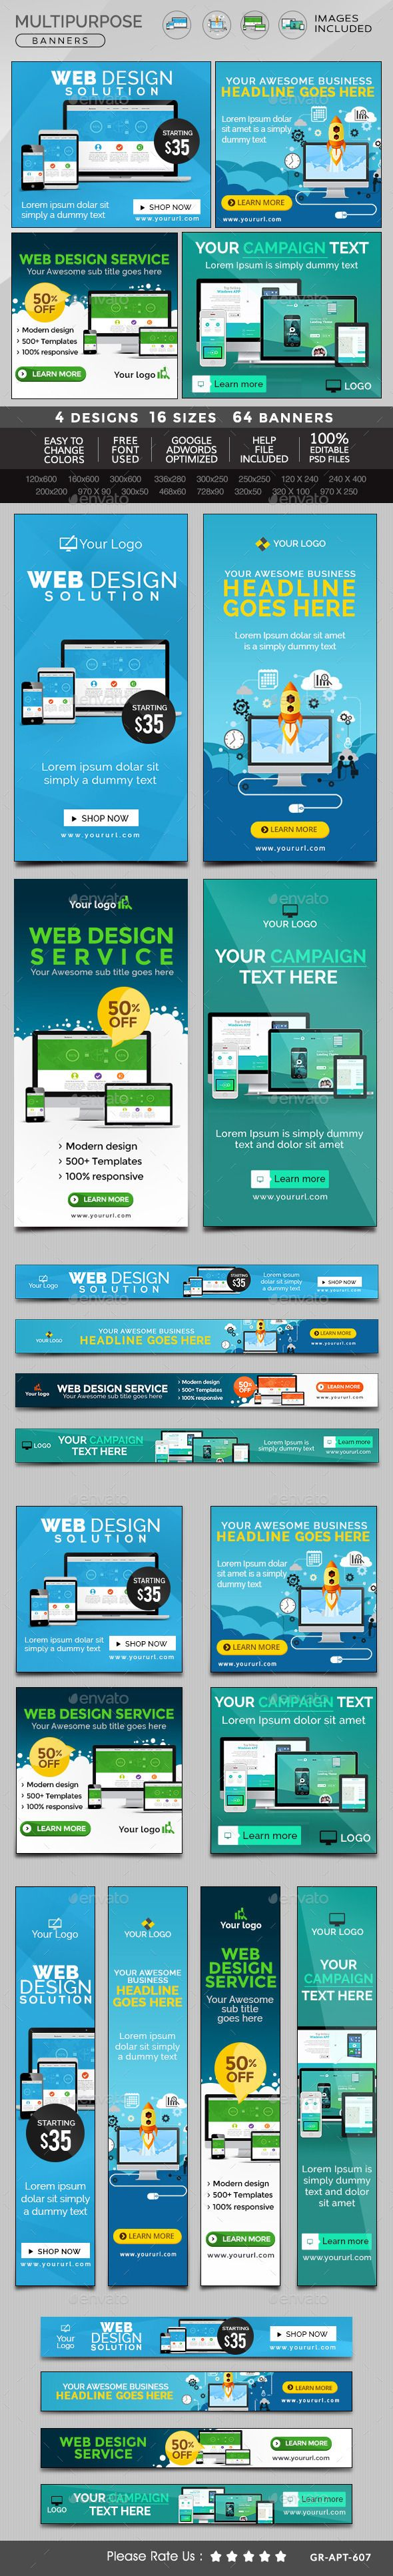 101 best social media images on pinterest advertising snood and